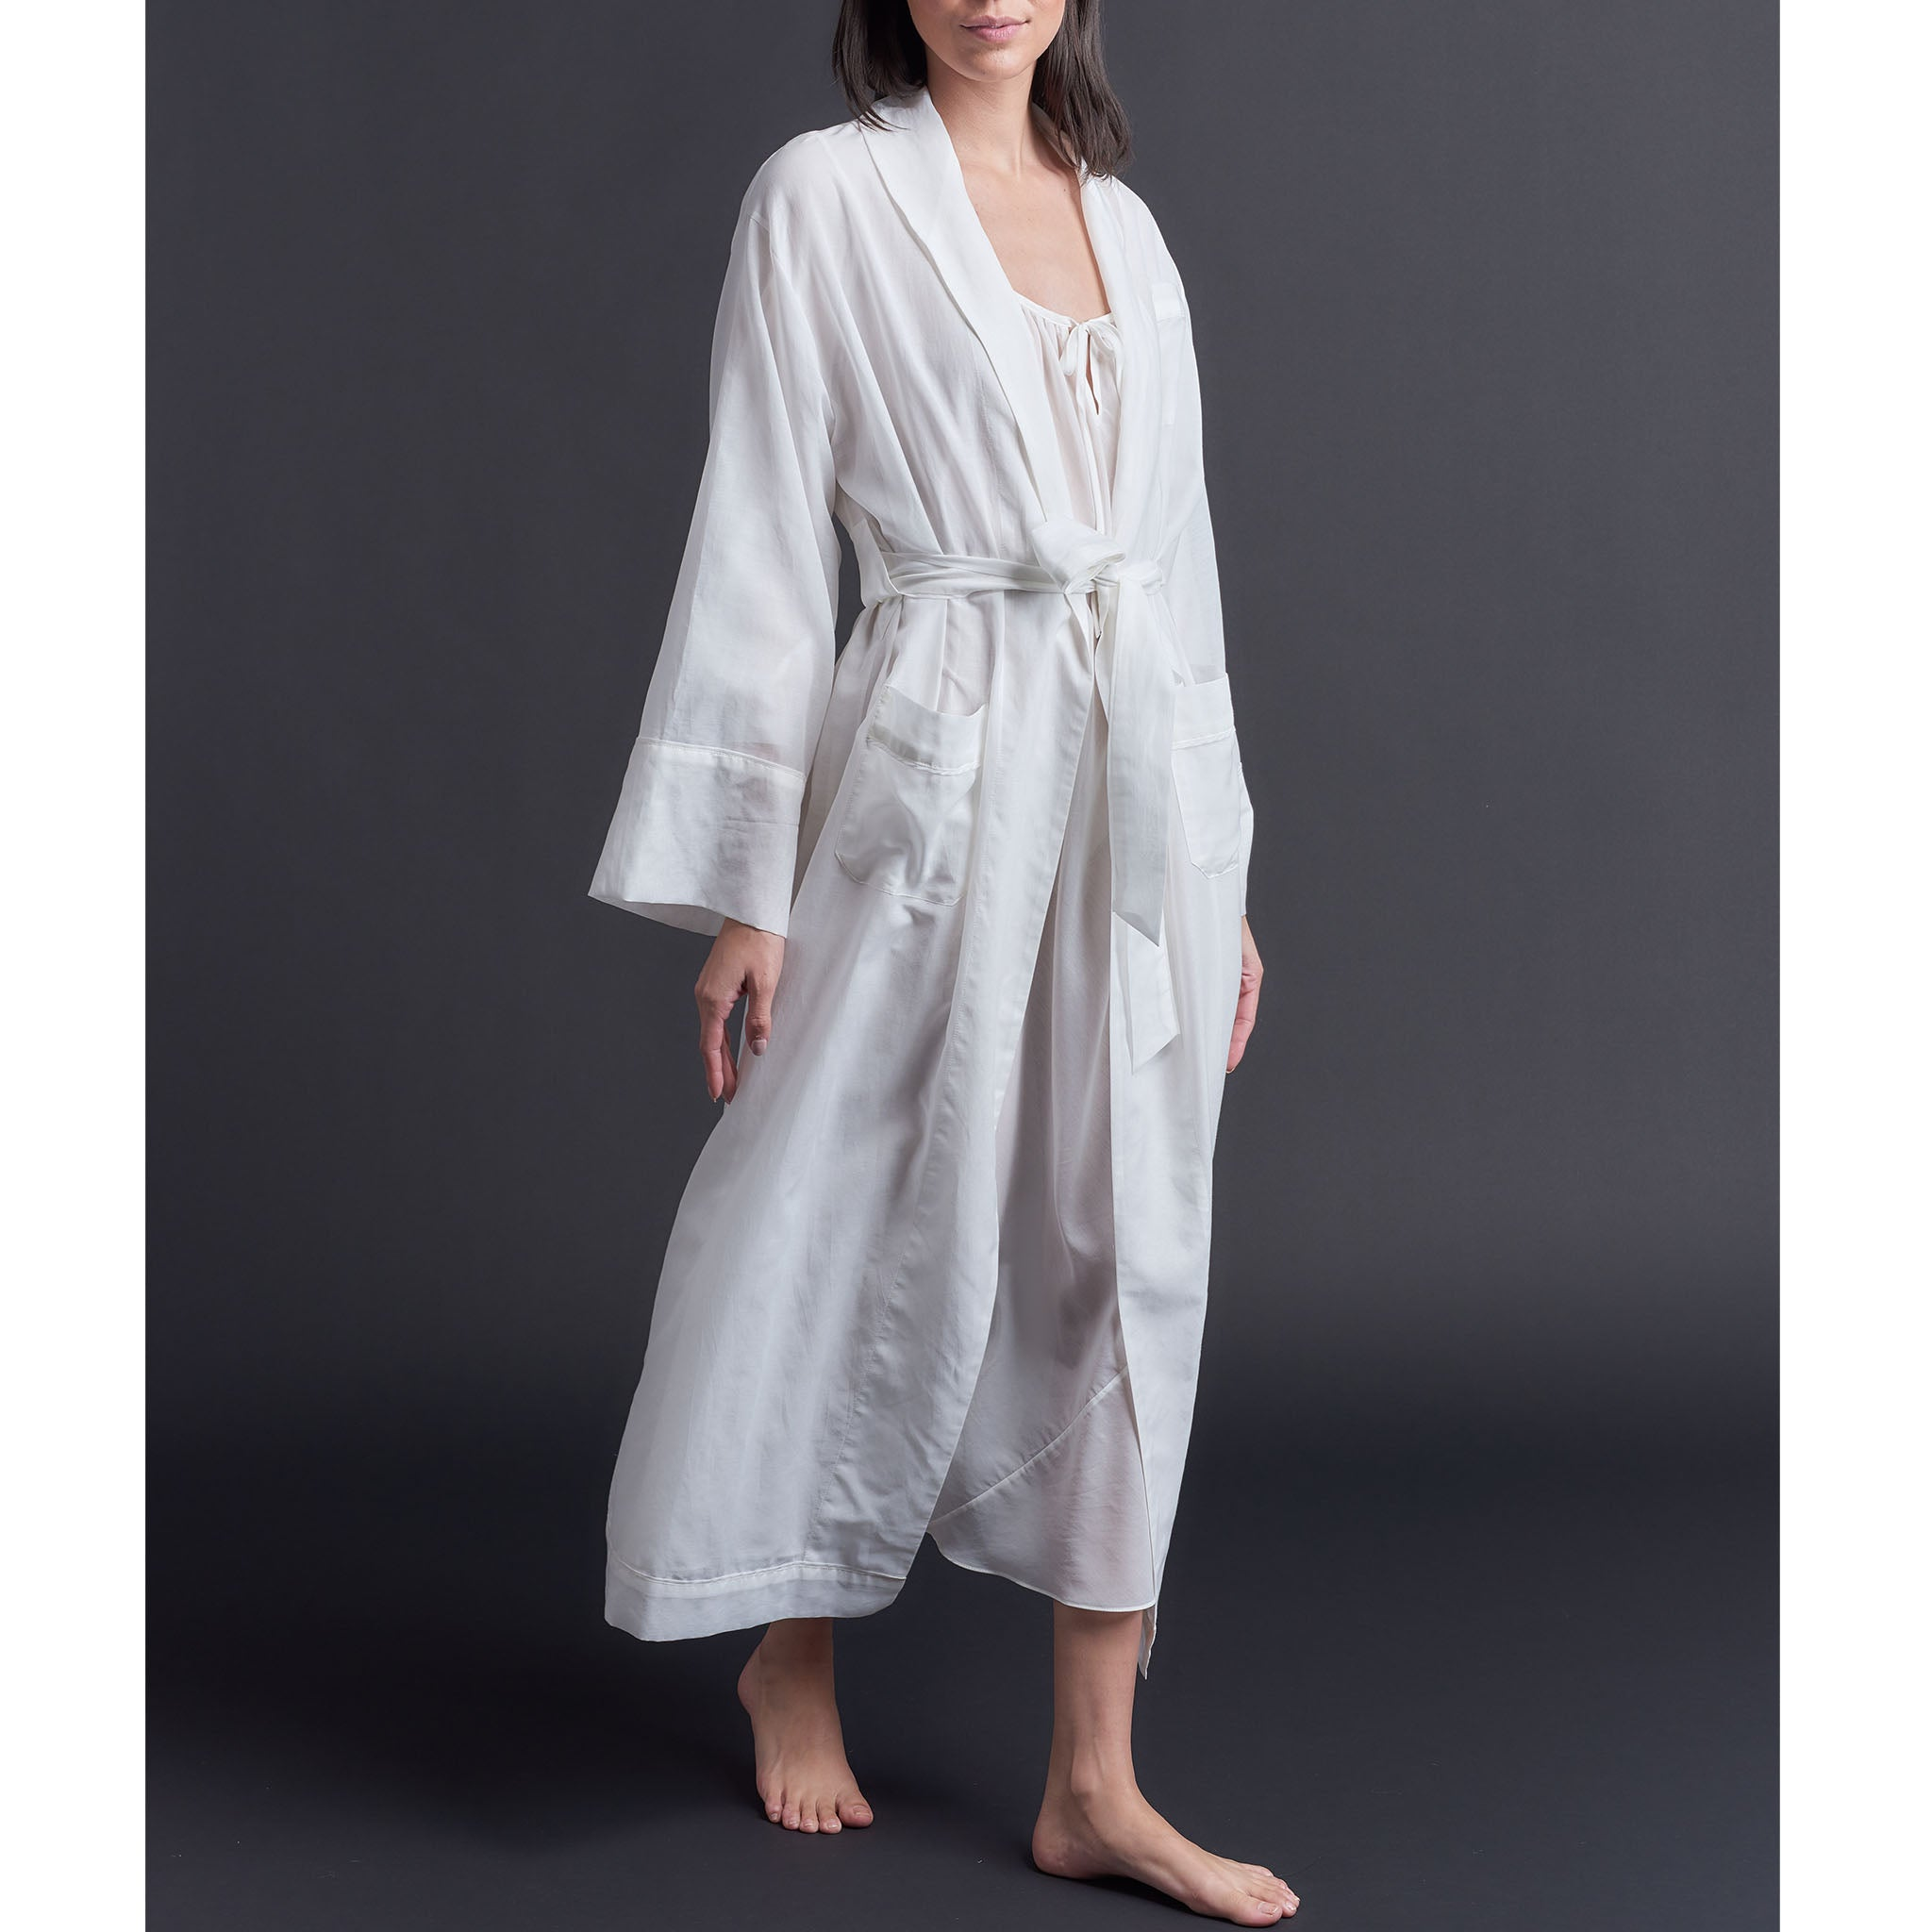 Long Claudette Robe in Pearl Silk Cotton Voile